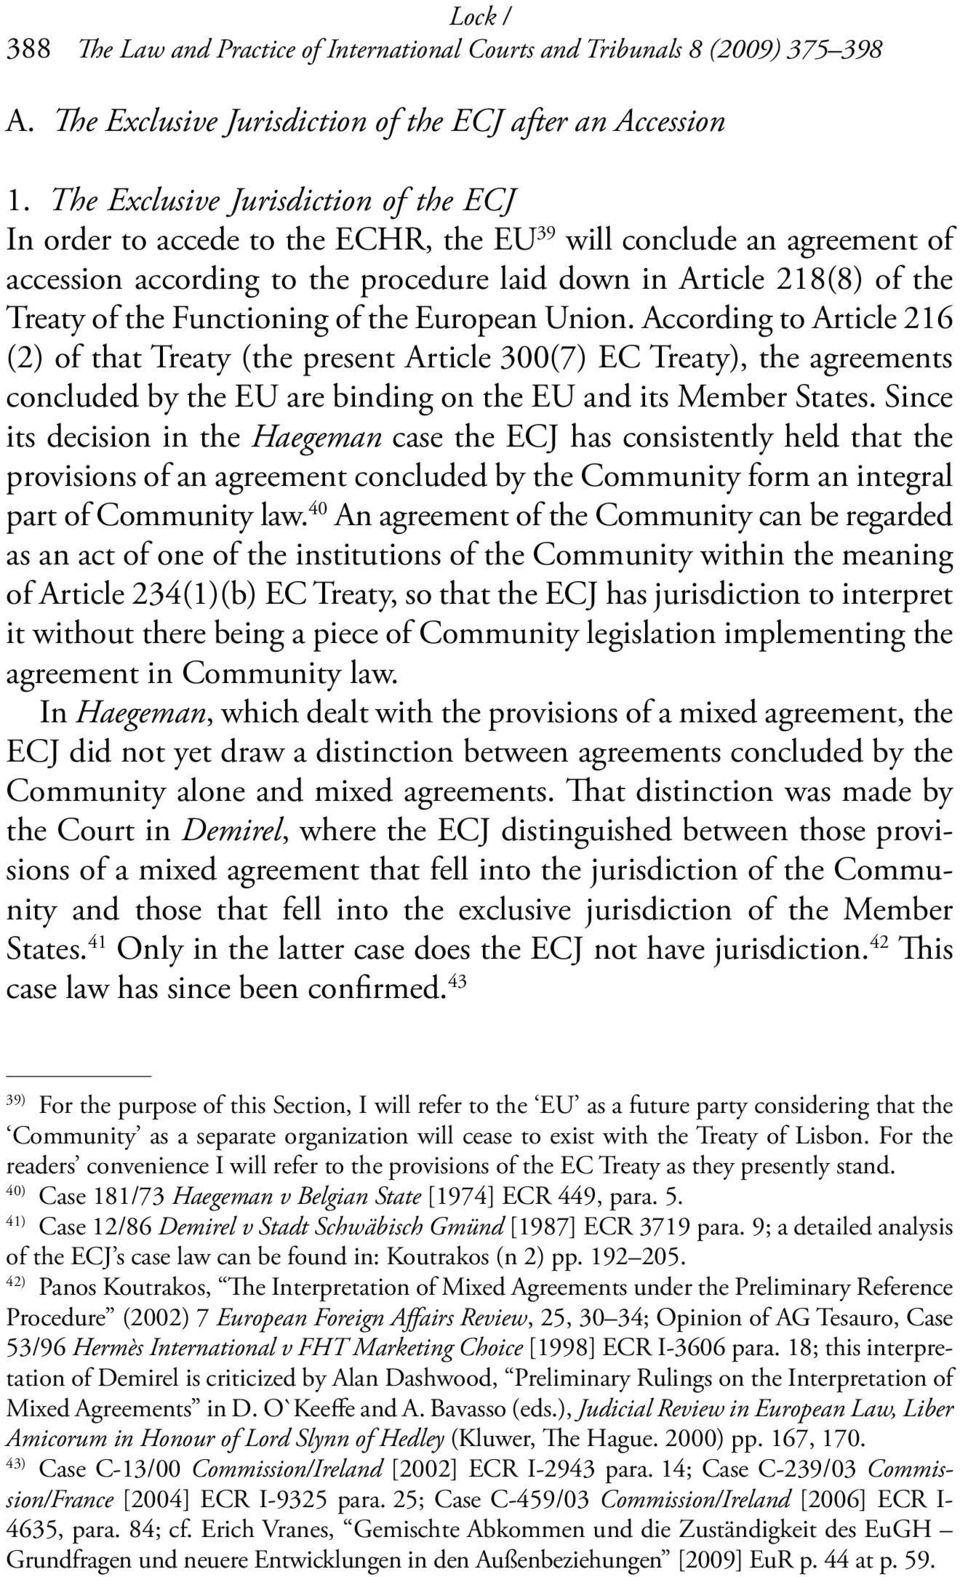 Functioning of the European Union. According to Arti cle 216 (2) of that Treaty (the present Article 300(7) EC Treaty), the agreements concluded by the EU are binding on the EU and its Member States.